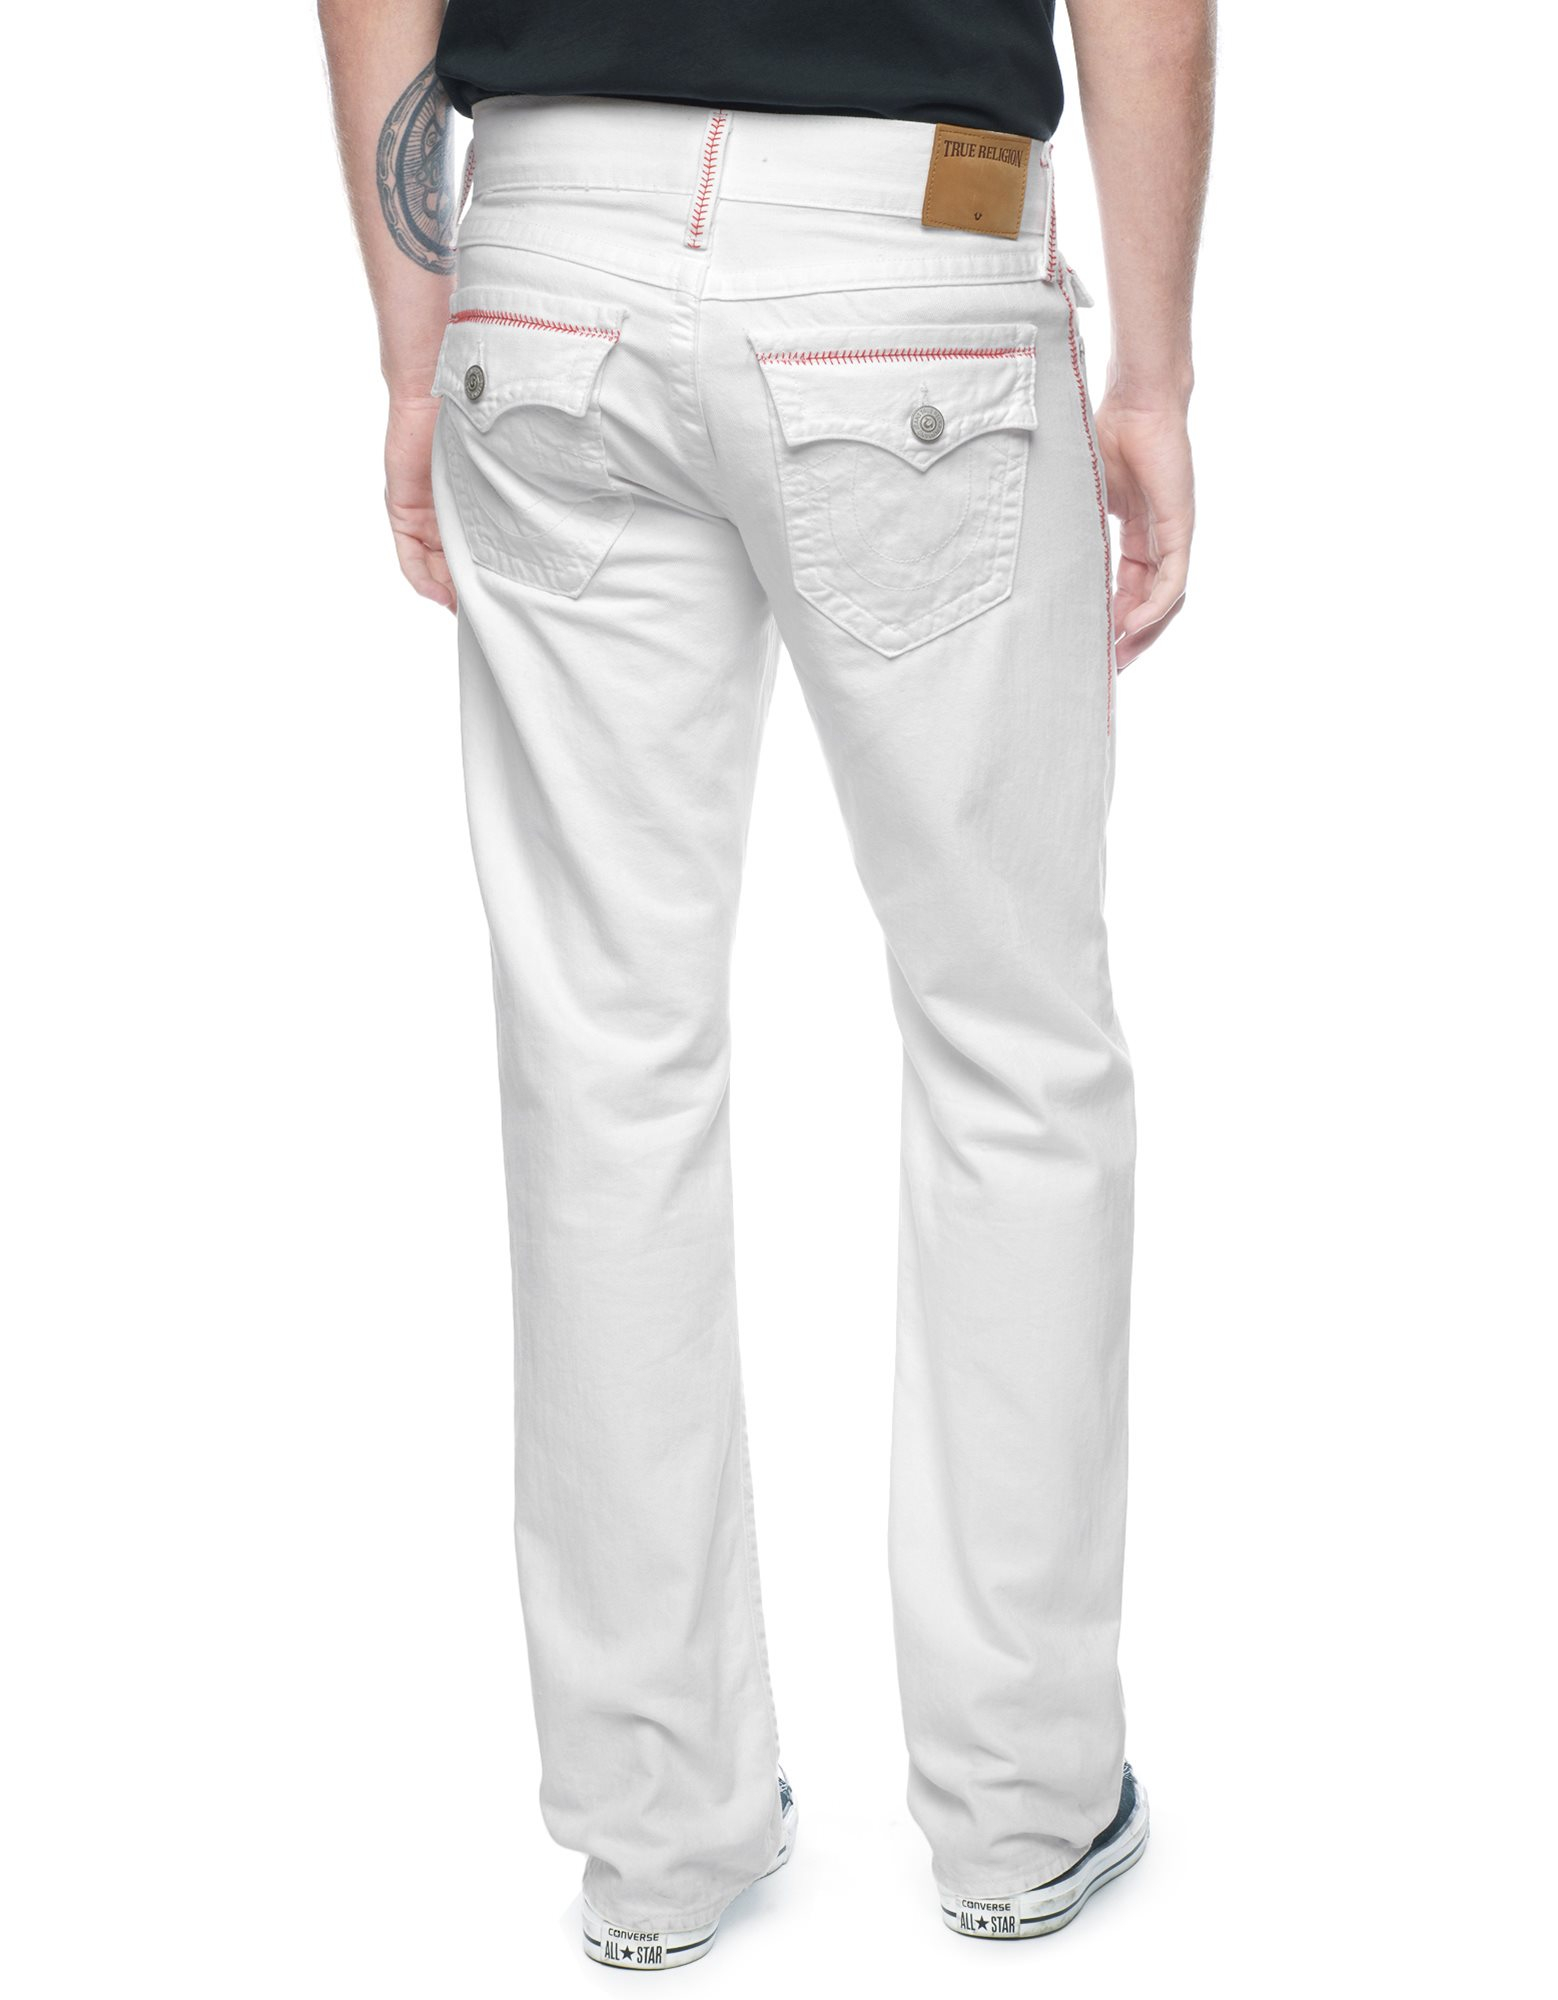 true religion jeans white with black stitching www